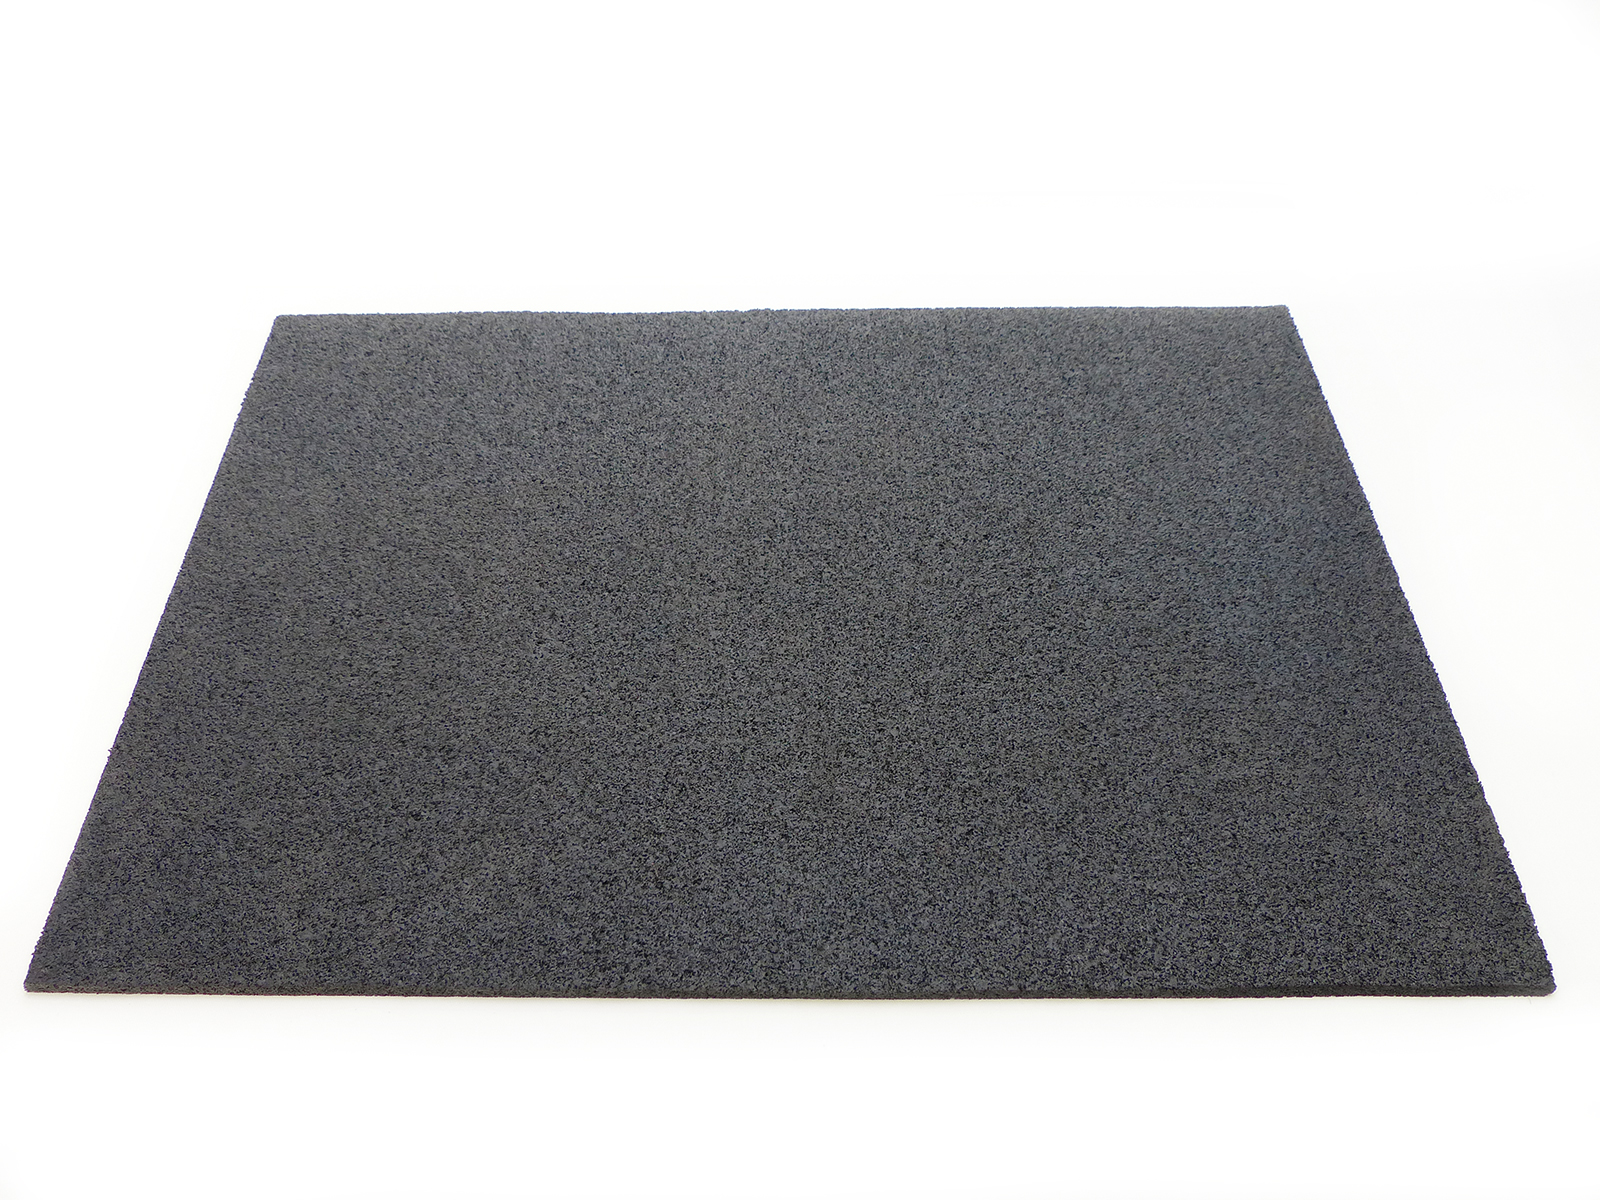 Rubber Floor Mats Carpet Vidalondon